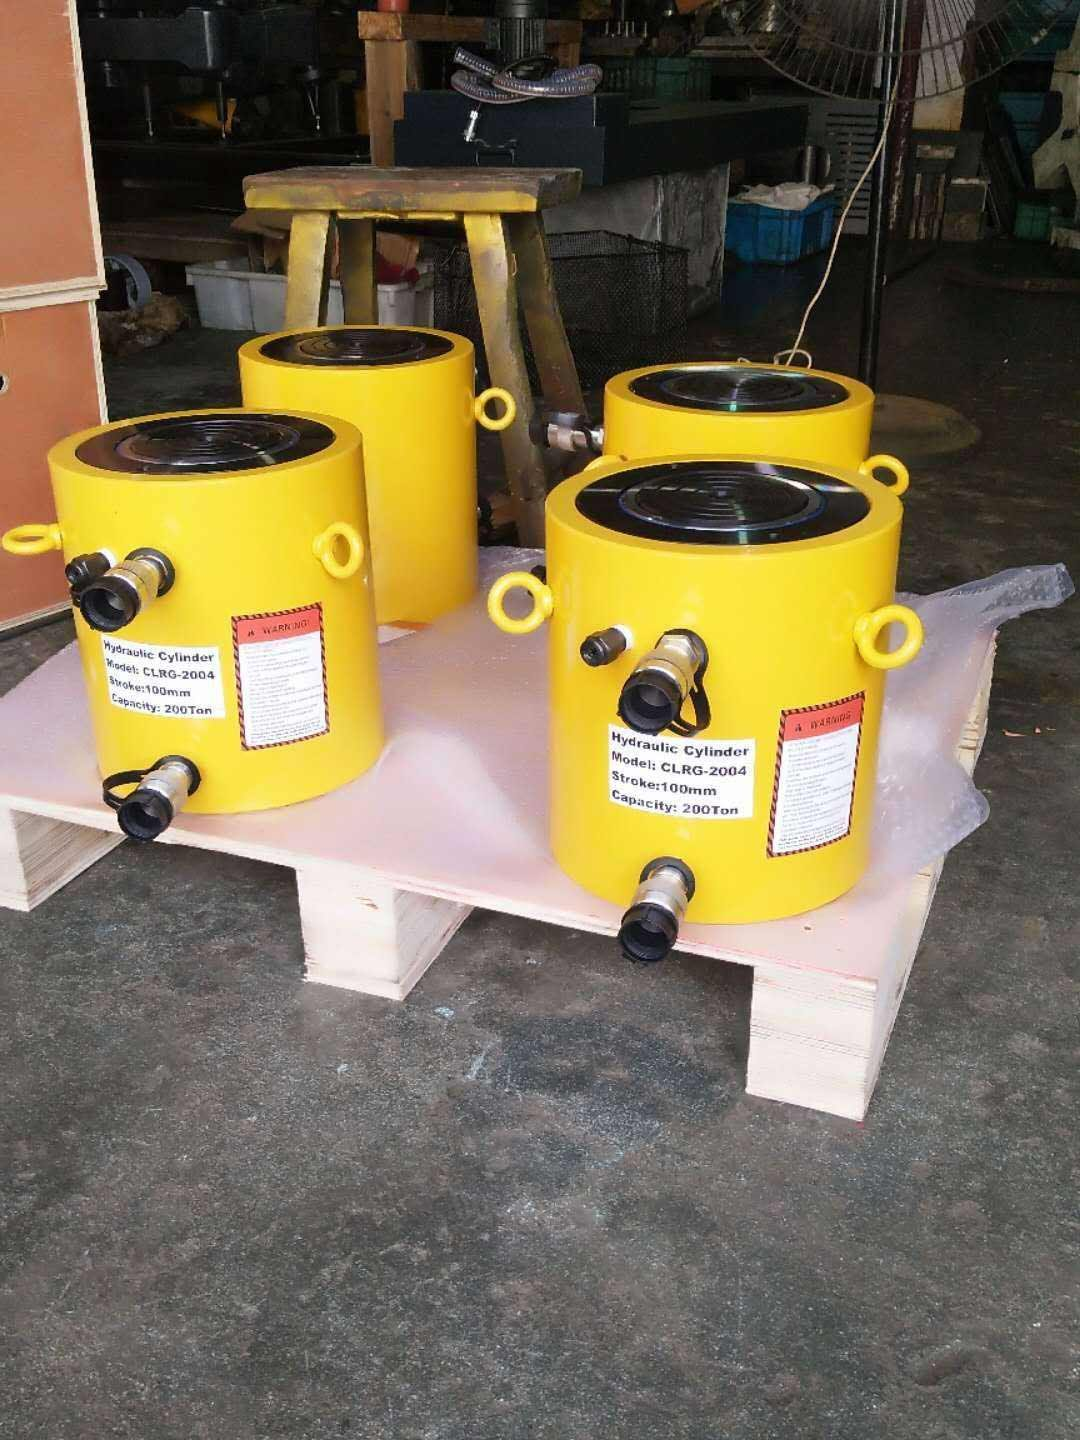 CLRG-Double-Acting-Hydraulic-Cylinders-and-Double-Acting-Hollow-Ram-Hydraulic-Cylinders-4